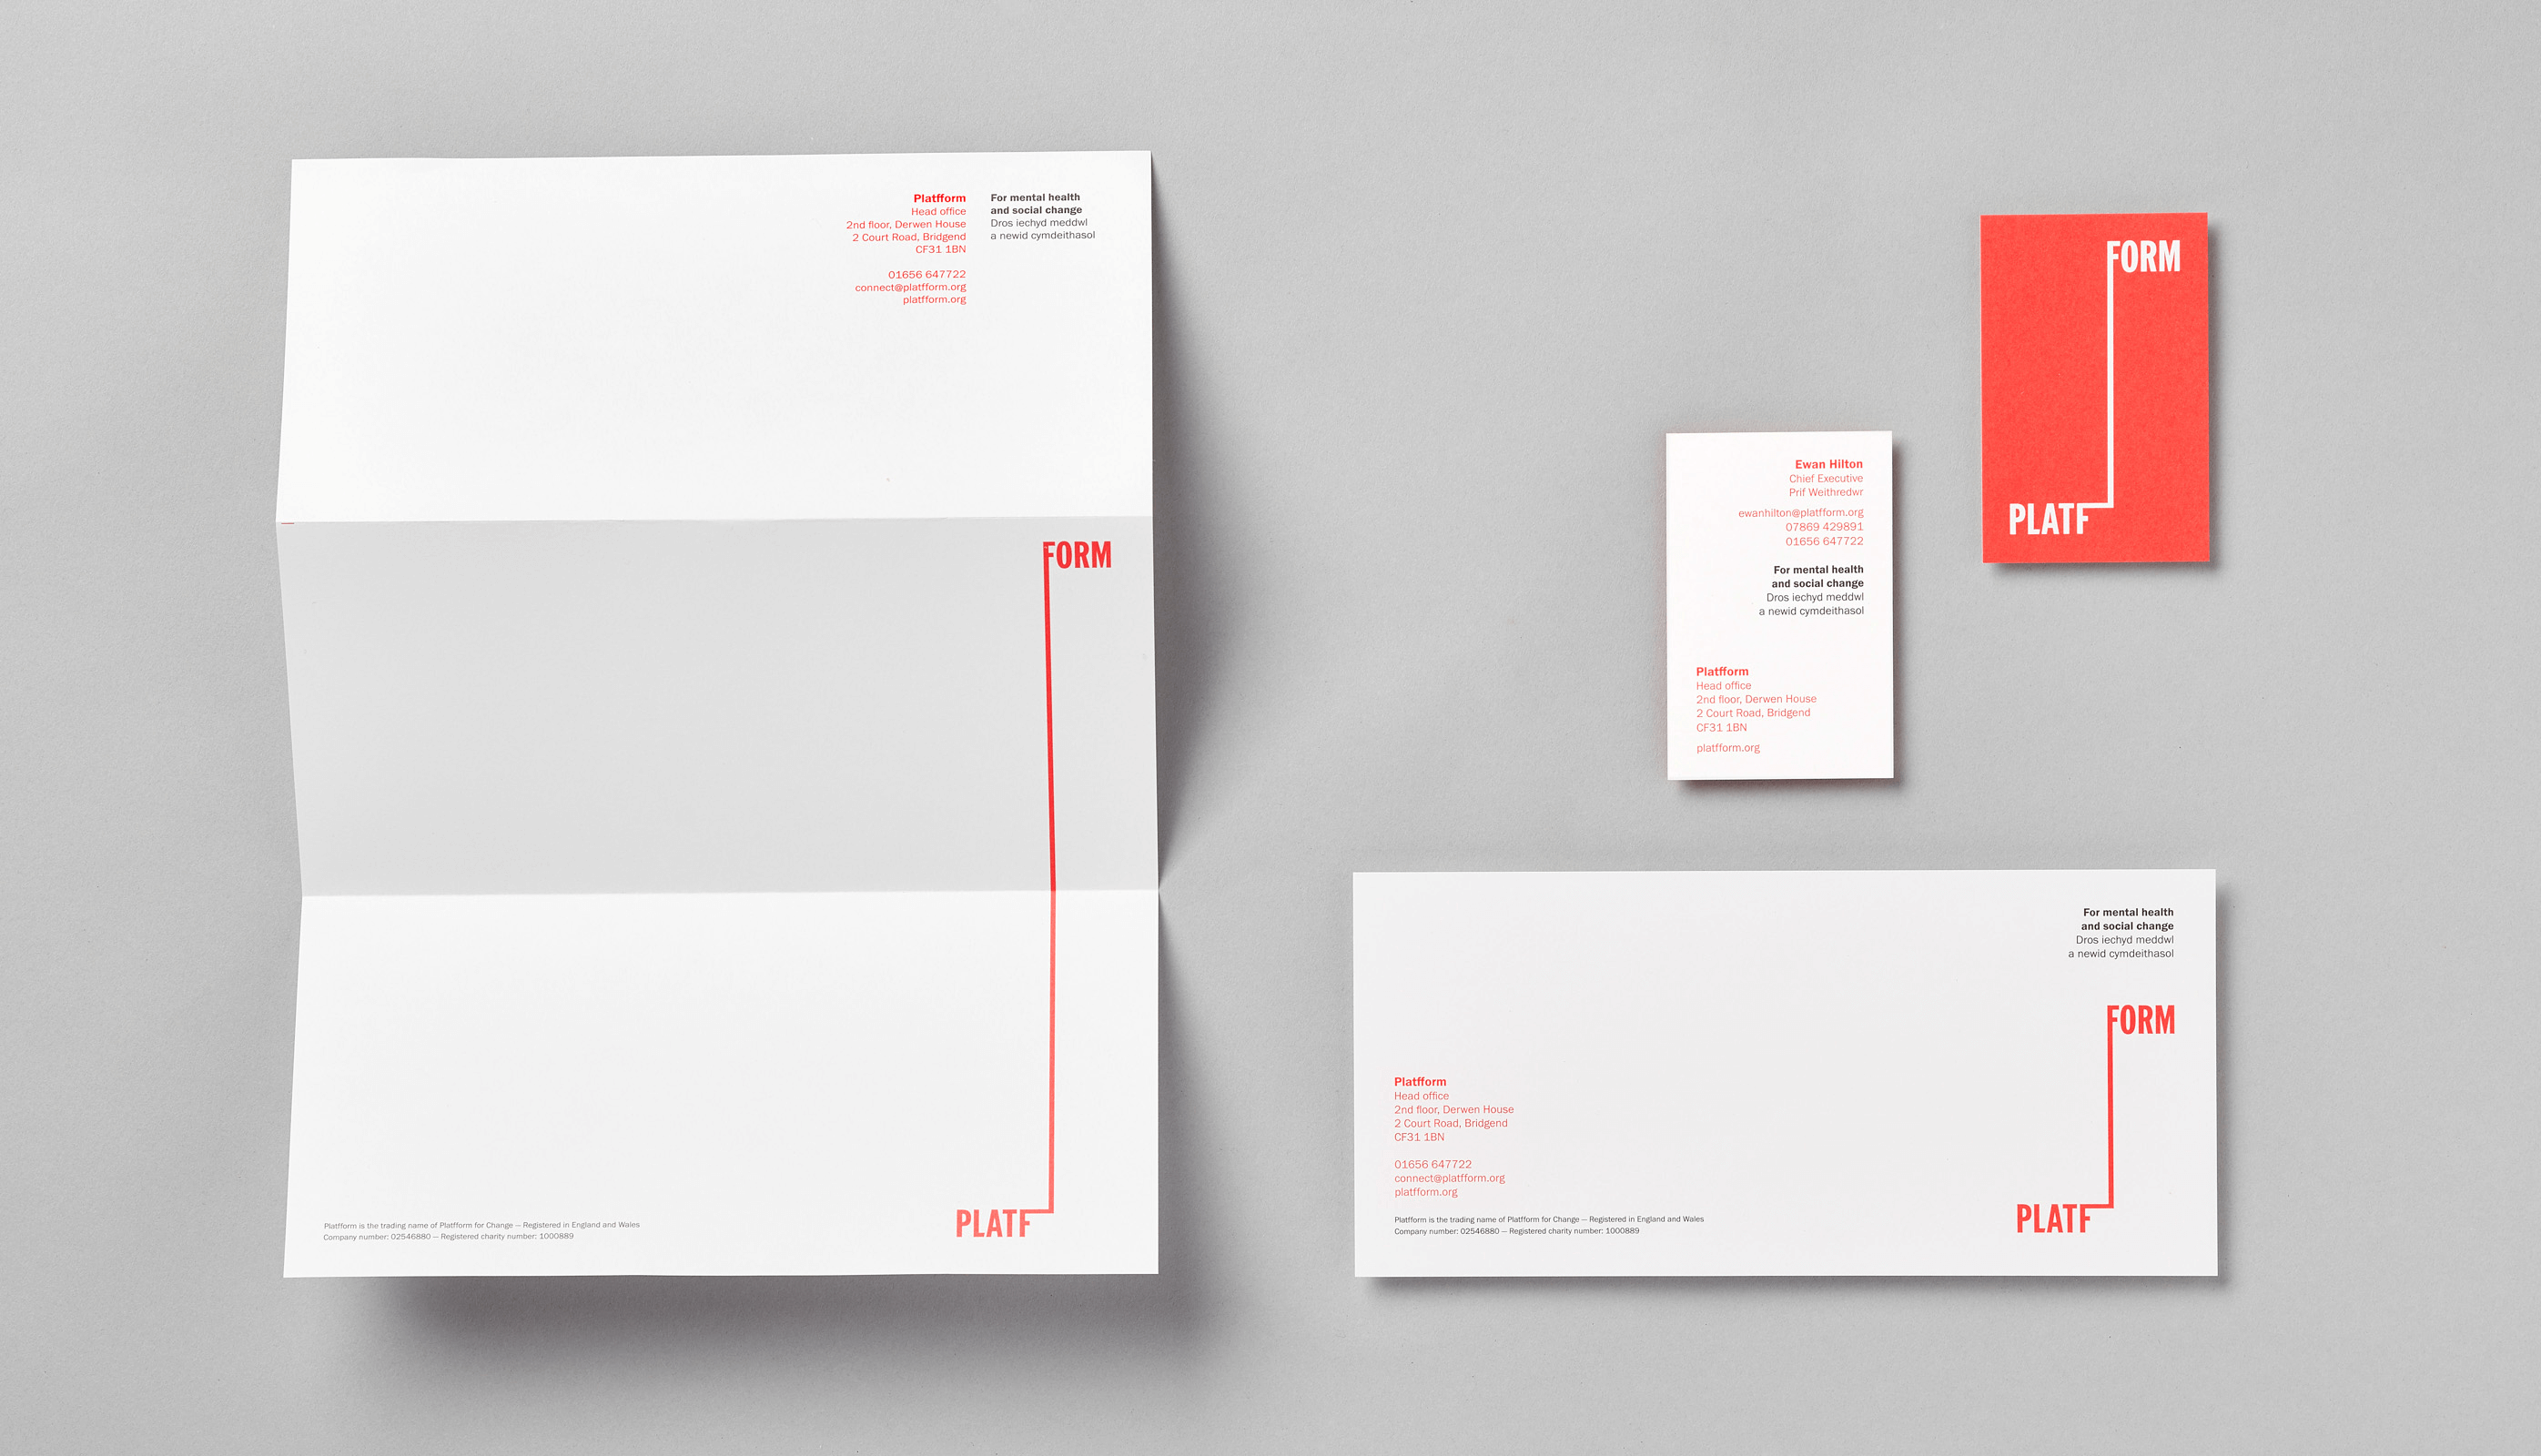 Platfform stationery